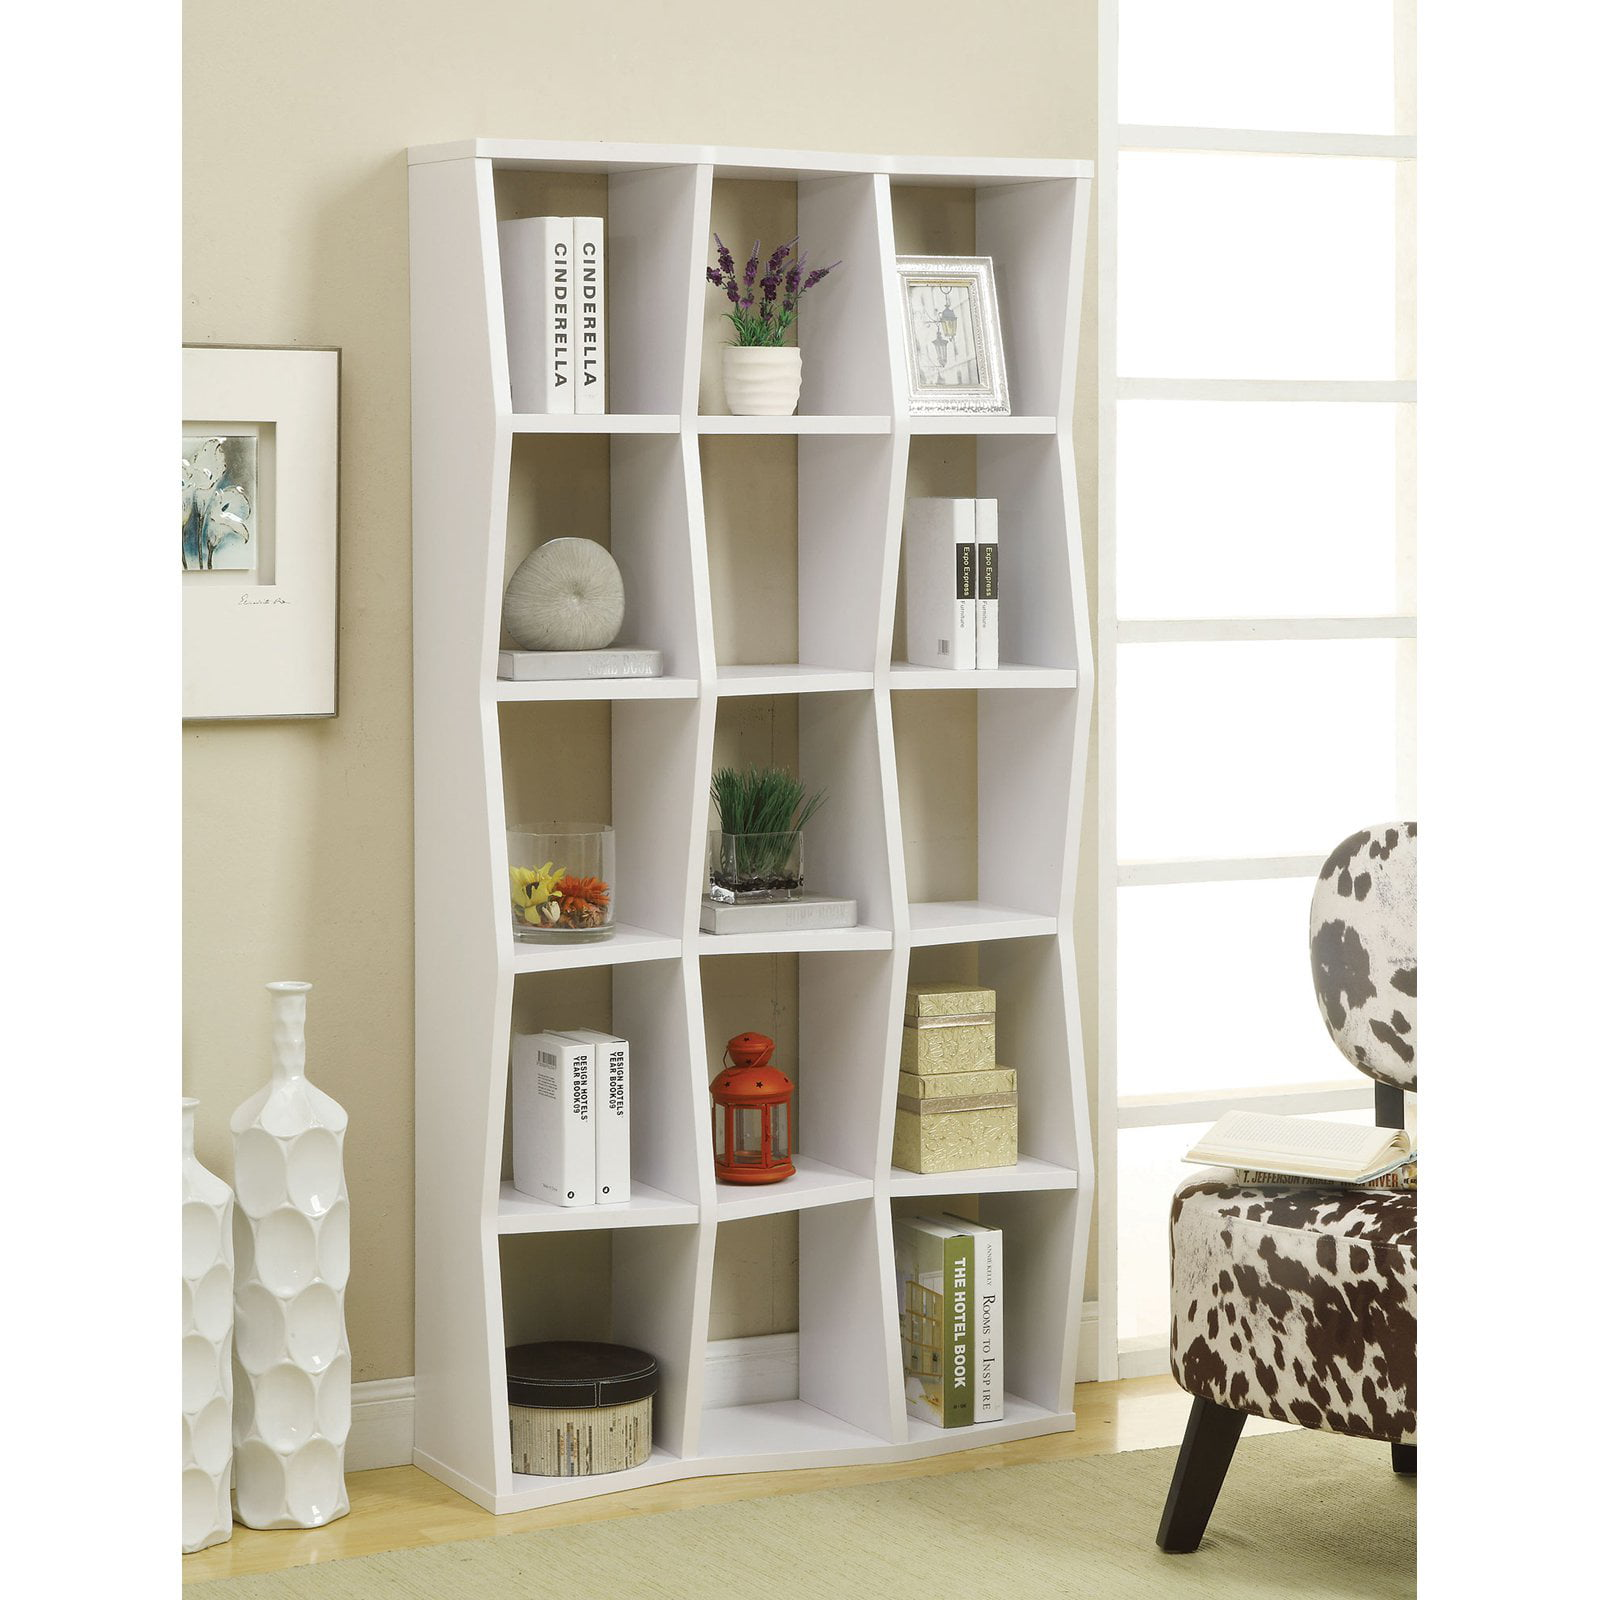 Backless Bookshelves Coaster Backless Bookcase, White - Walmart.com